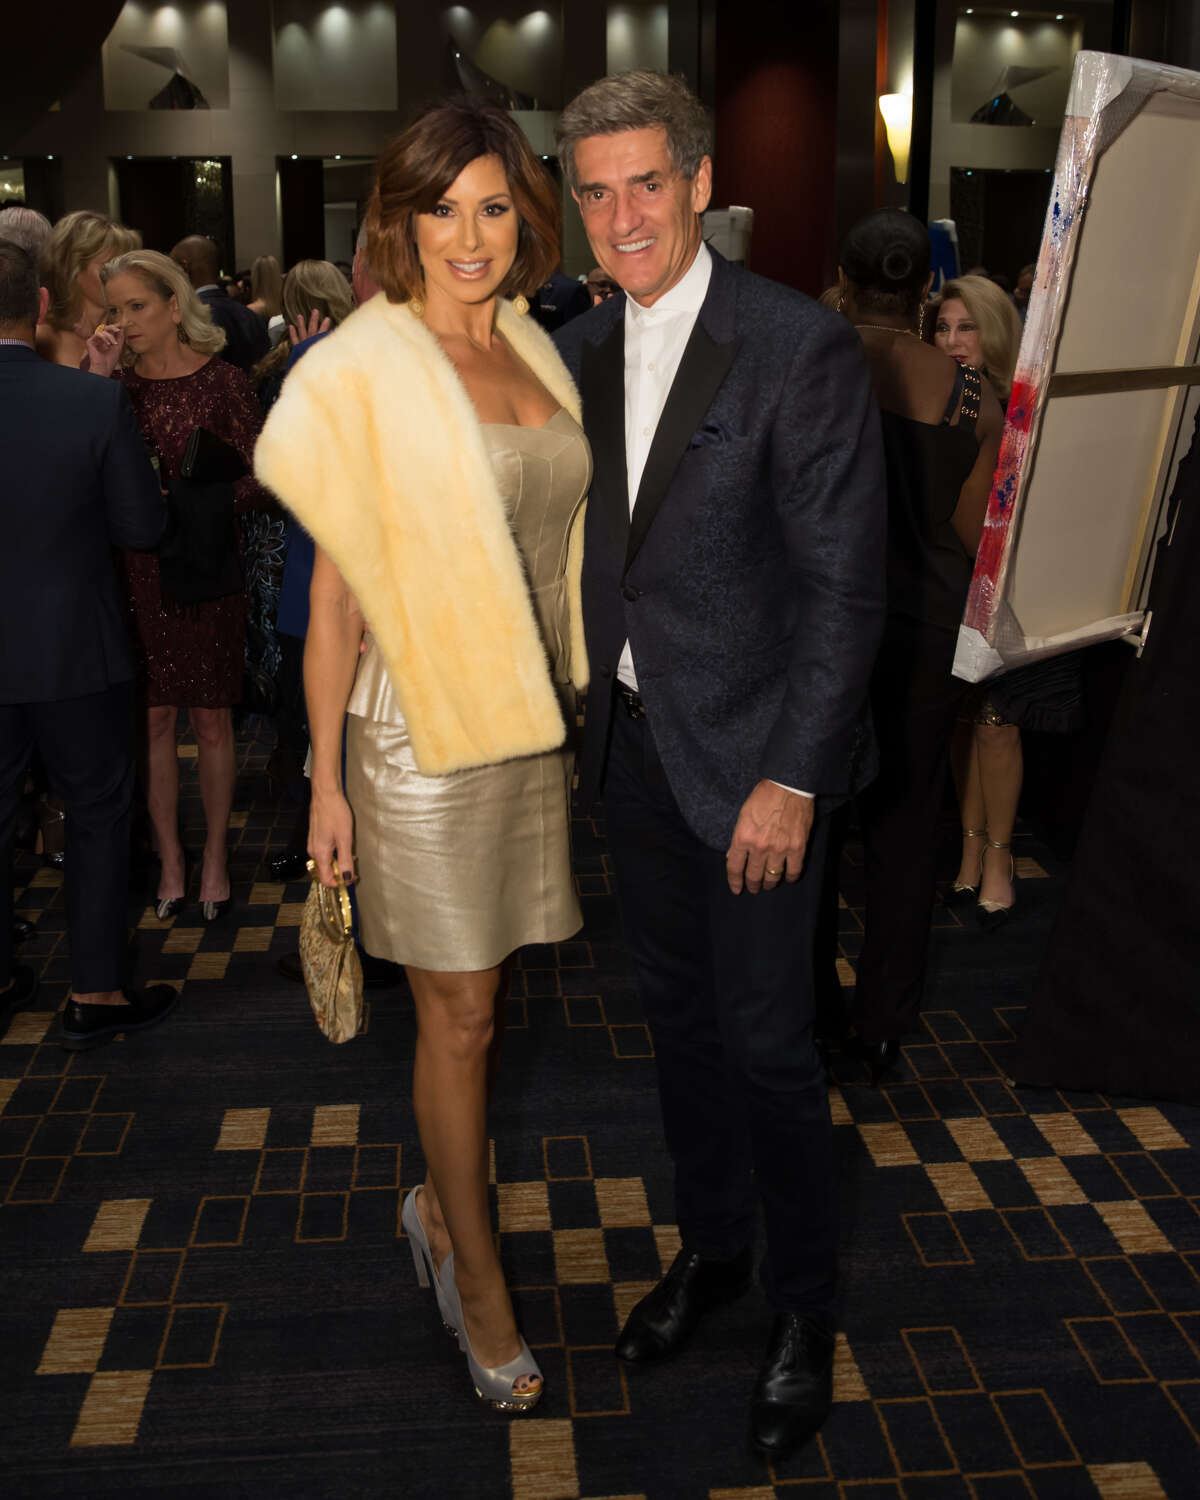 The 2018 Una Notte in Italia gala raised more than $400,000 for Houston Area Women's Center. Dominique Sachse, Nick Florescu. >>> Click through to see photos from the gala and runway fashion show.